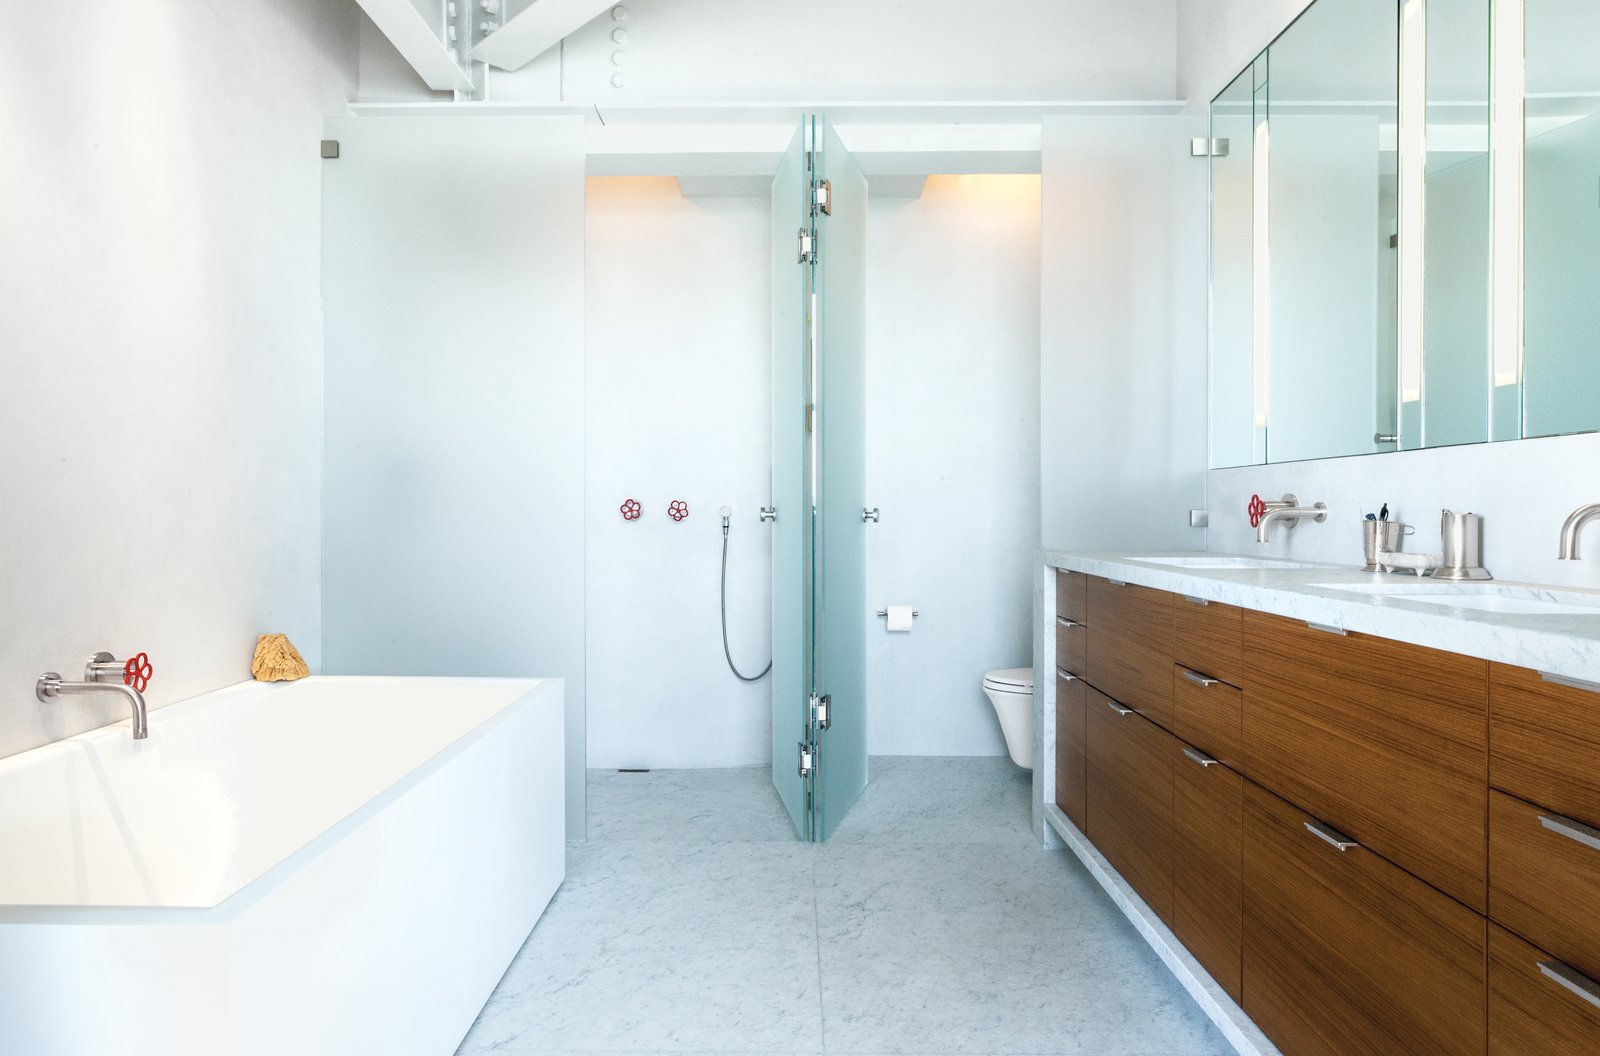 """""""The structural elements were left rough and exposed while the baths were designed to be clean and sleek,"""" Severns says. The bathroom is by Henrybuilt.  Parker Willis House by Erika Heet"""